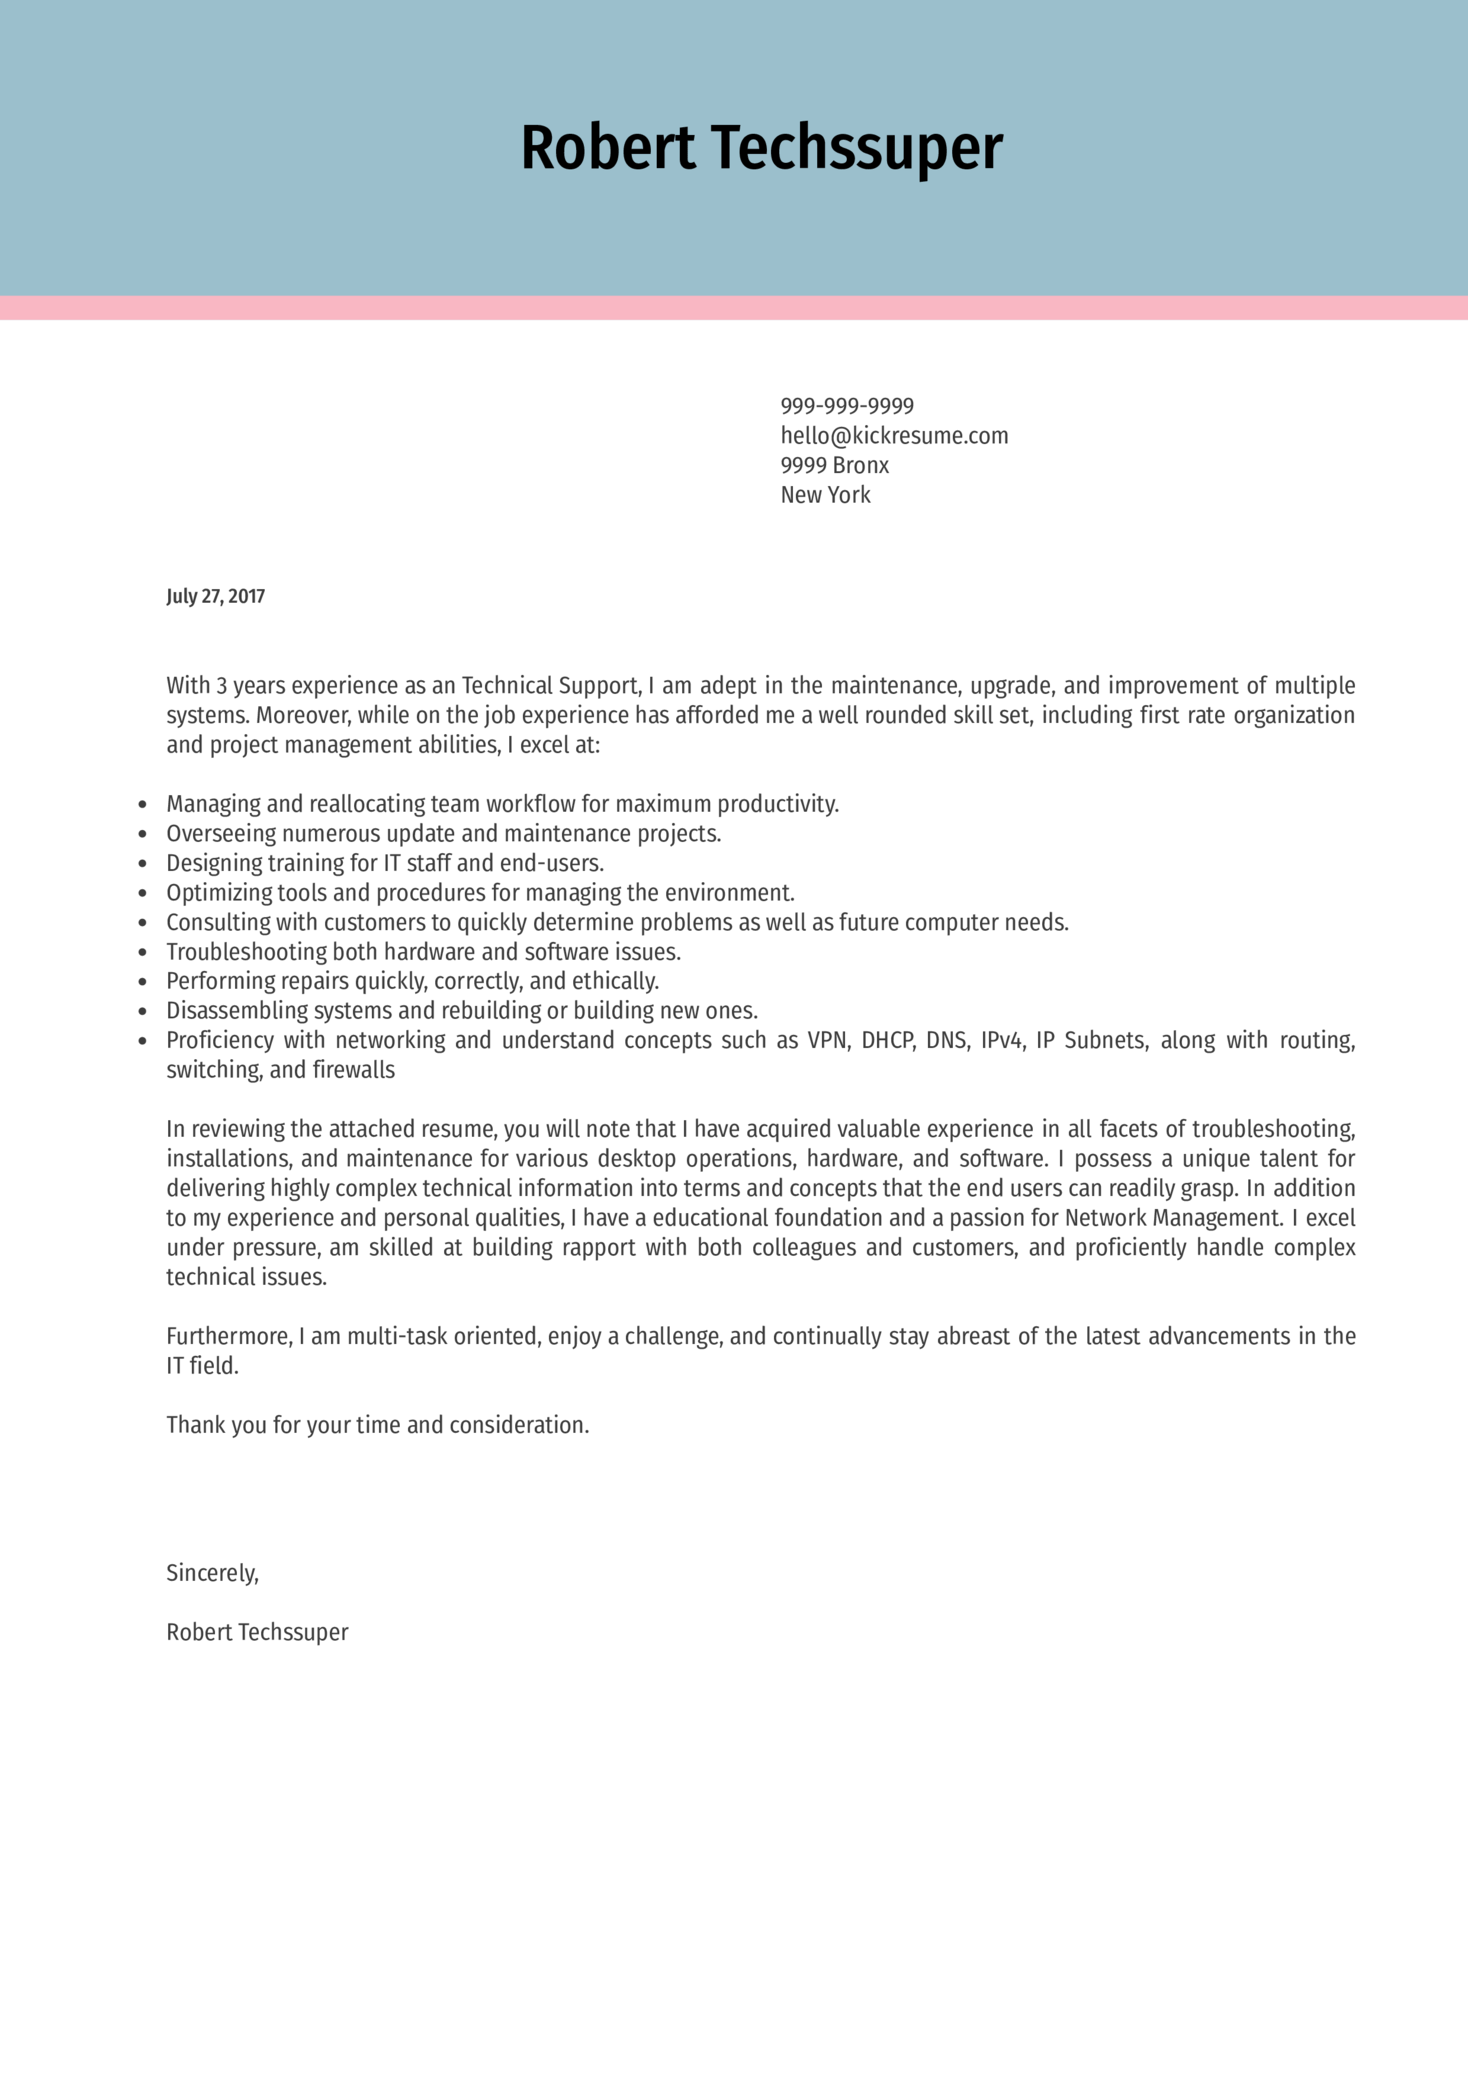 Technical Support Representative Cover Letter Kickresume